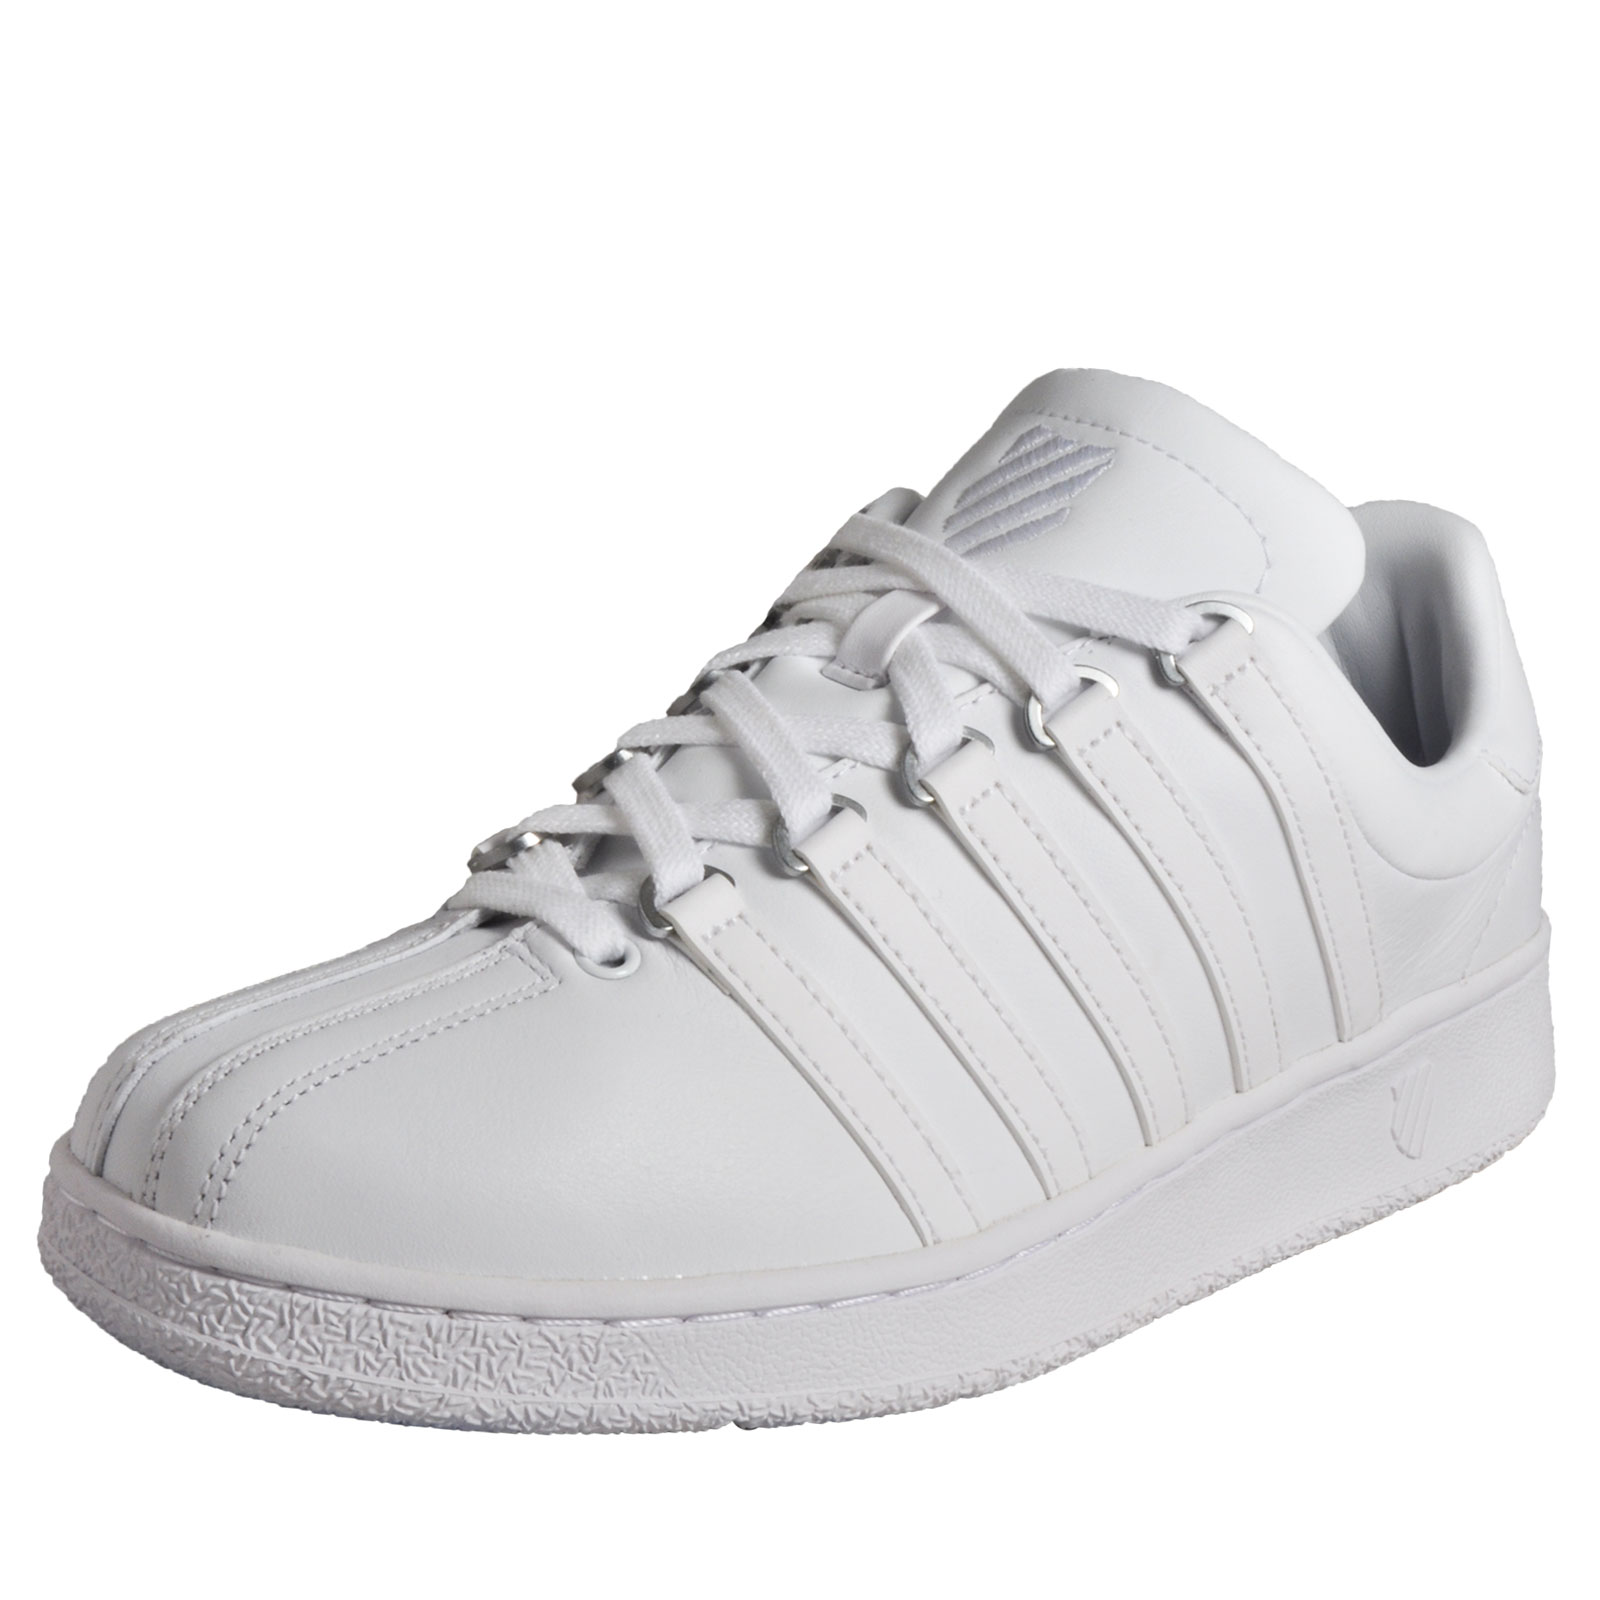 a1b67f0b5fd7 Details about K Swiss Classic Vintage Men s Leather Casual Leather Retro  Trainers White